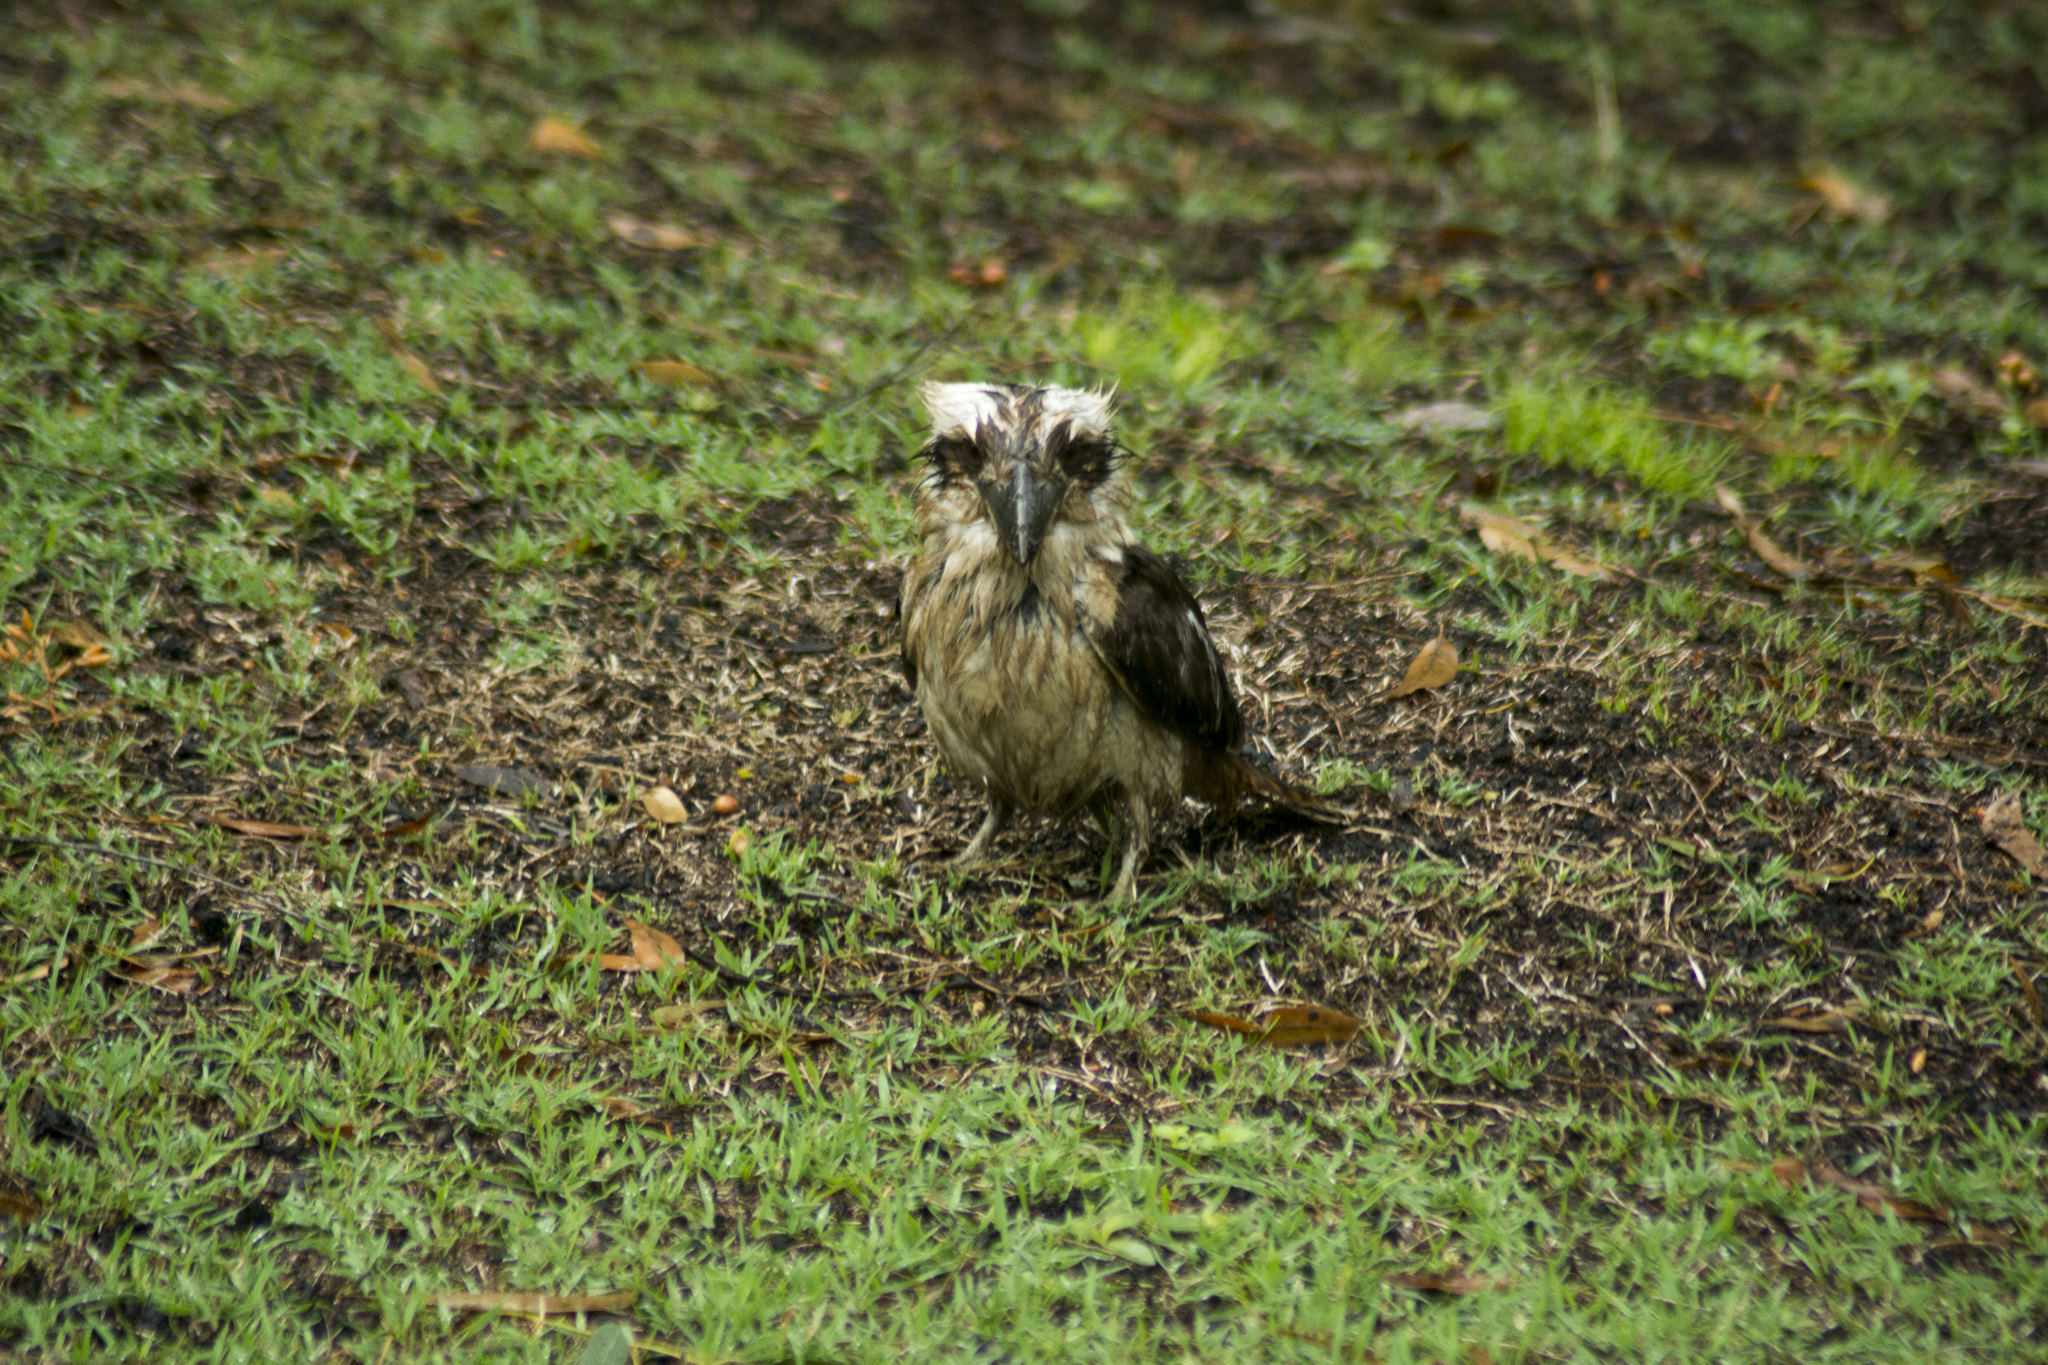 Wet and muddy Kookaburra hunting on the ground